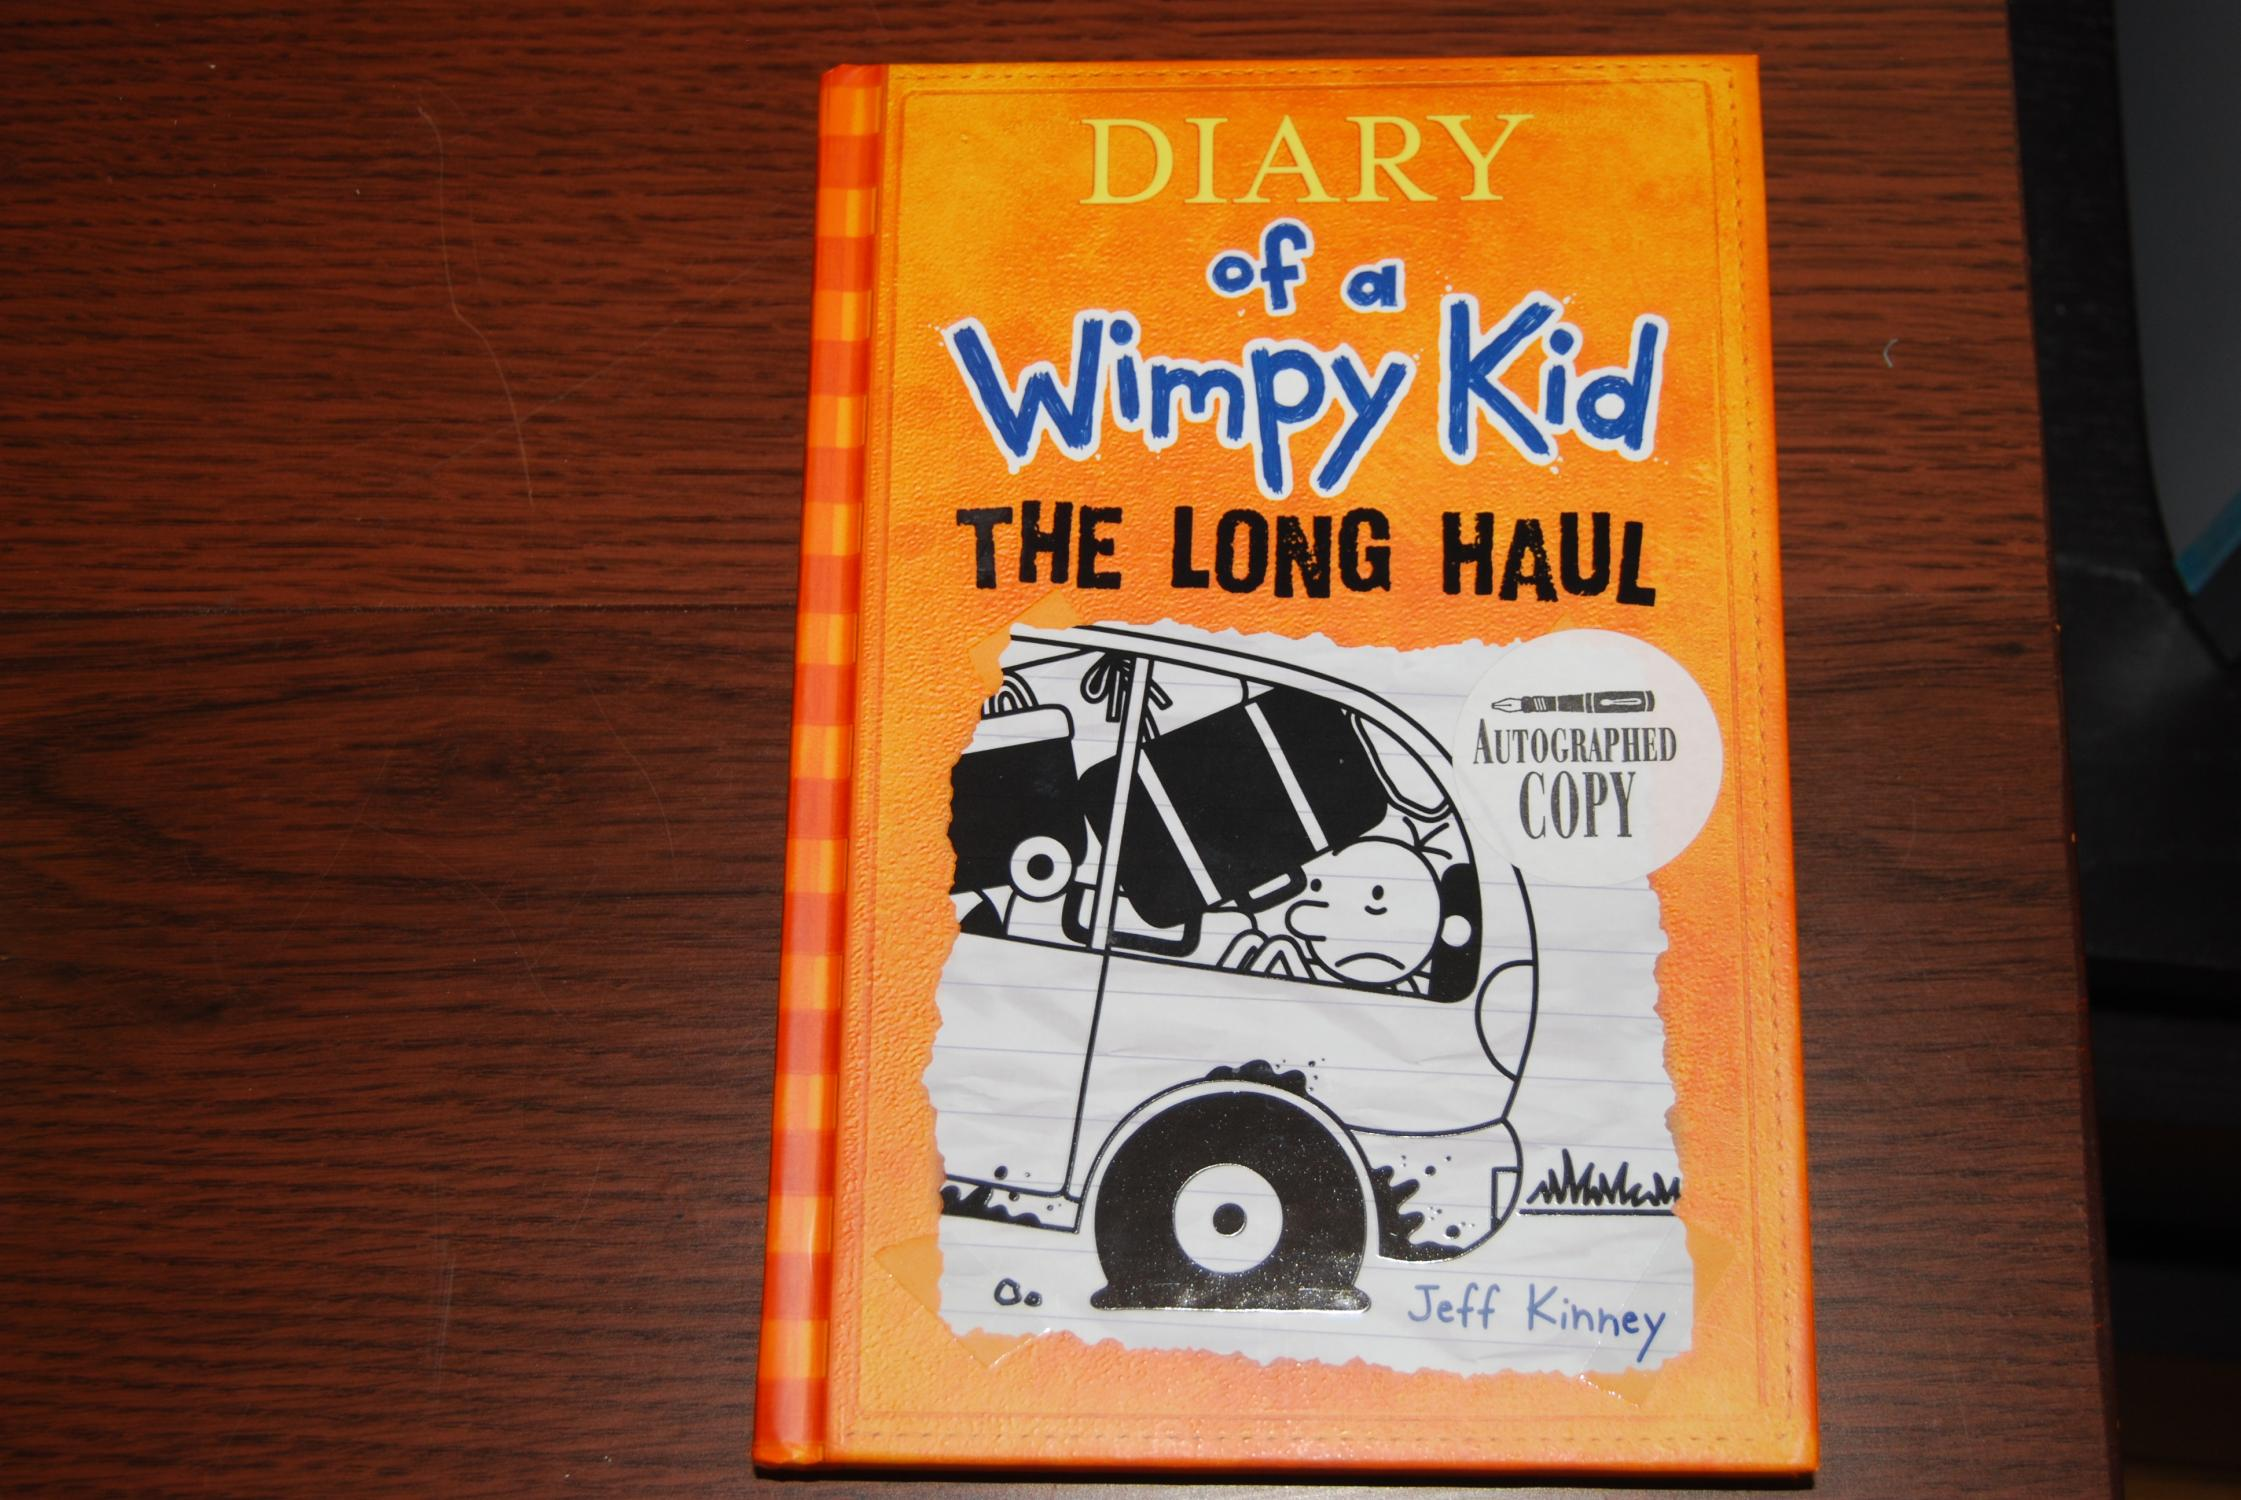 Diary Of A Wimpy Kid The Long Haul By Kinney Jeff New Hardcover 2014 1st Edition Signed By Author S Mima Mia Books